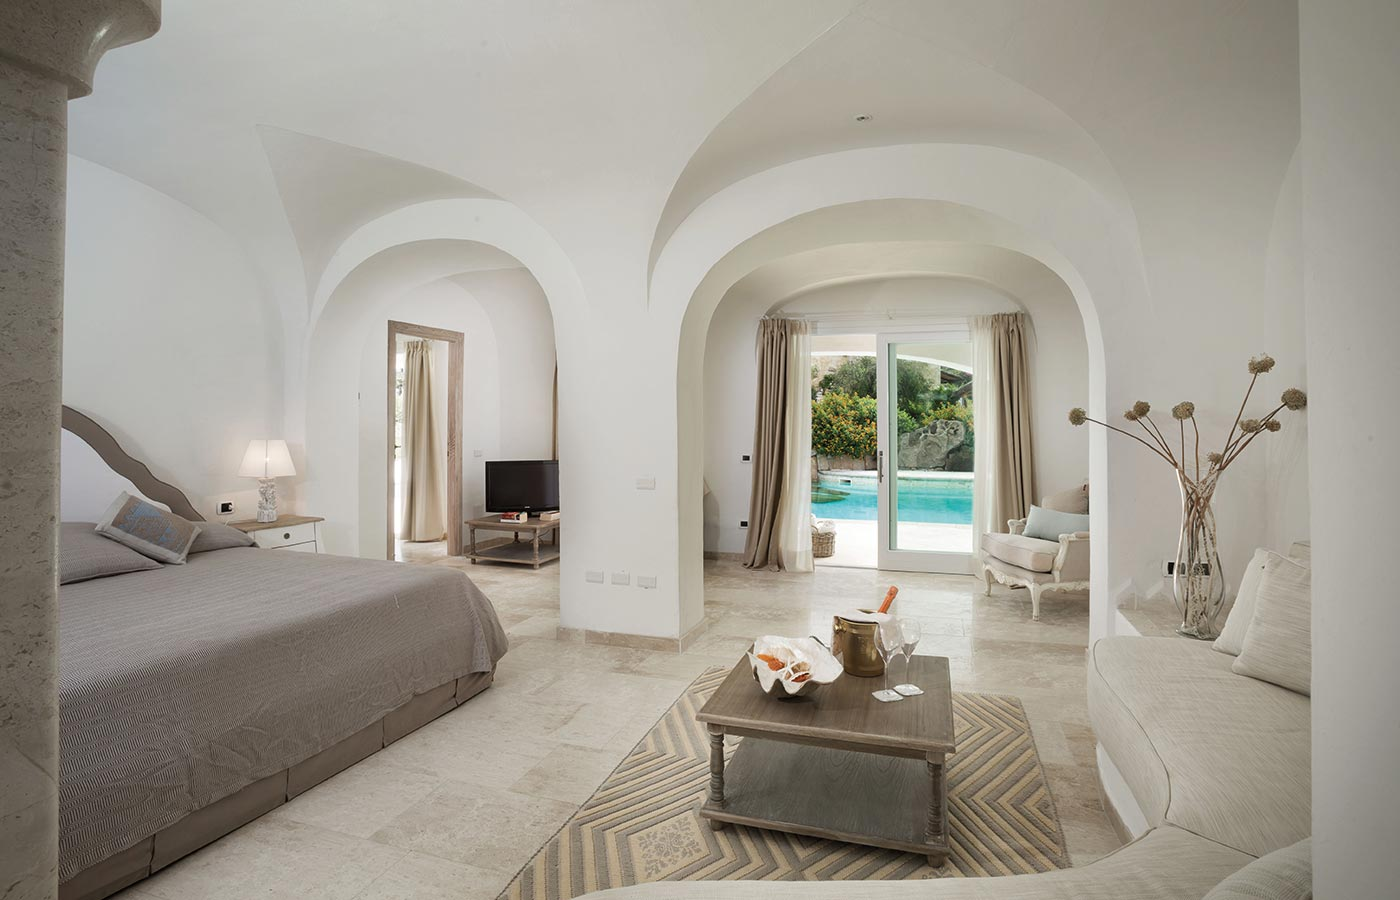 Your luxury hotel in Costa Smeralda with private pool